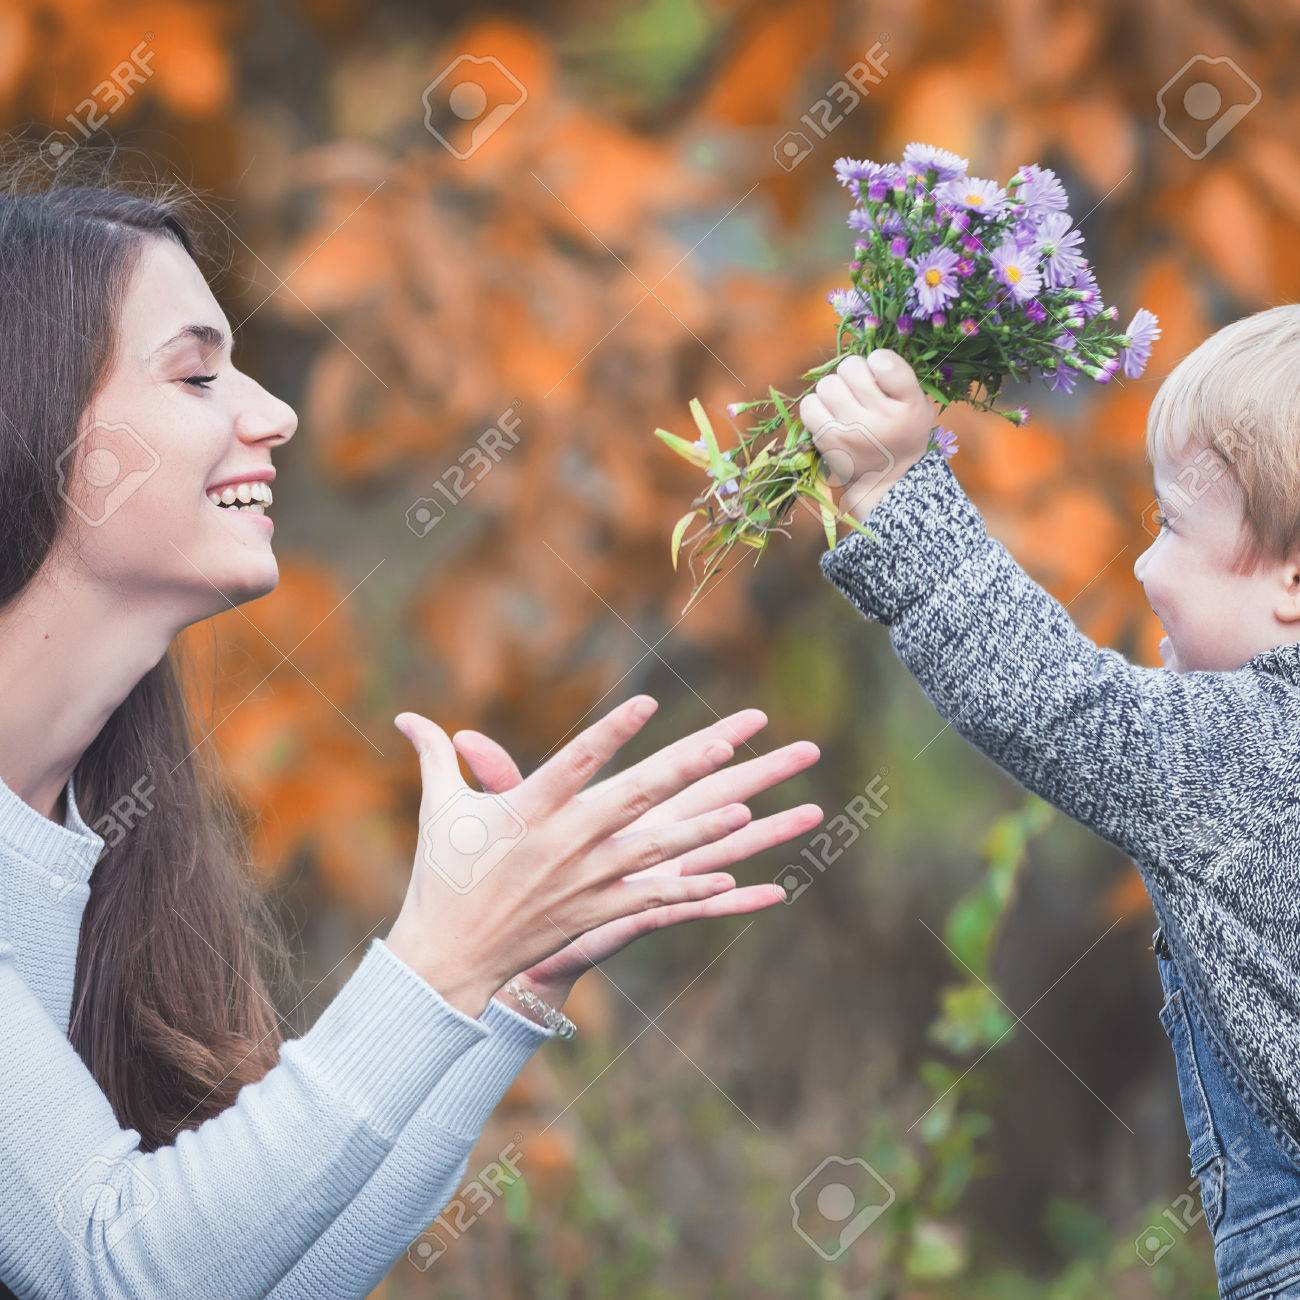 Child gives to happy mother flowers fall colors background happy family values baby